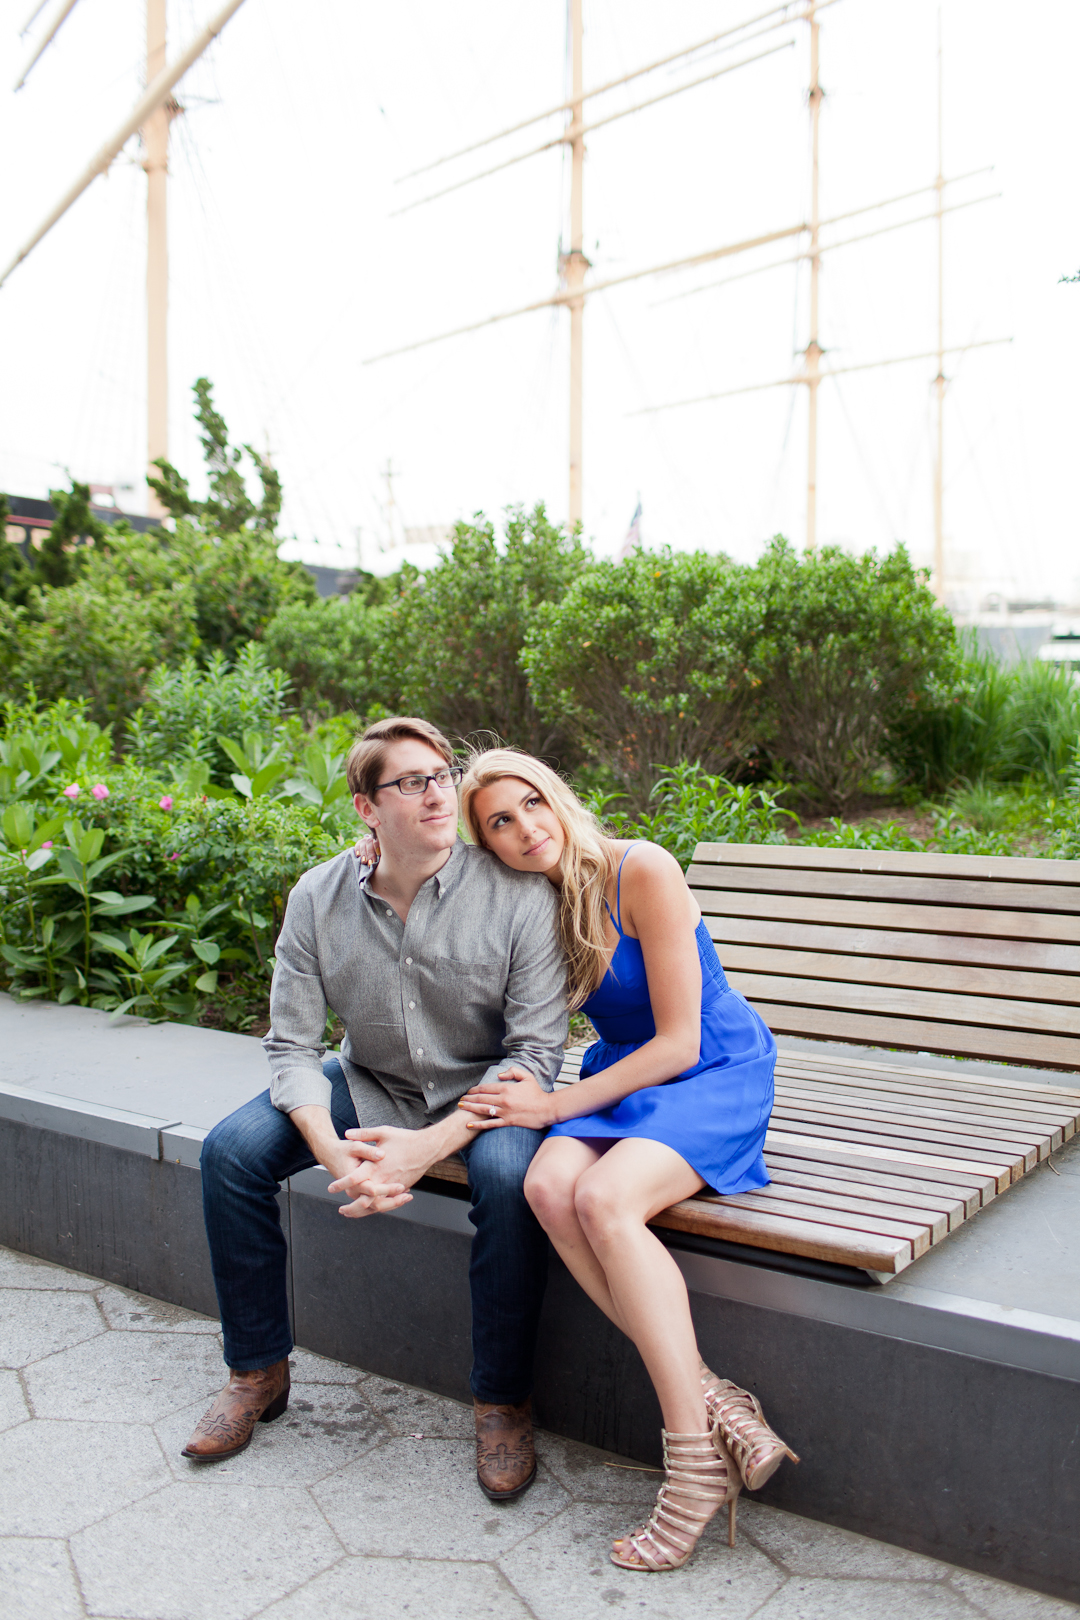 Melissa Kruse Photography - Kelley & Billy Engagement Photos-85.jpg